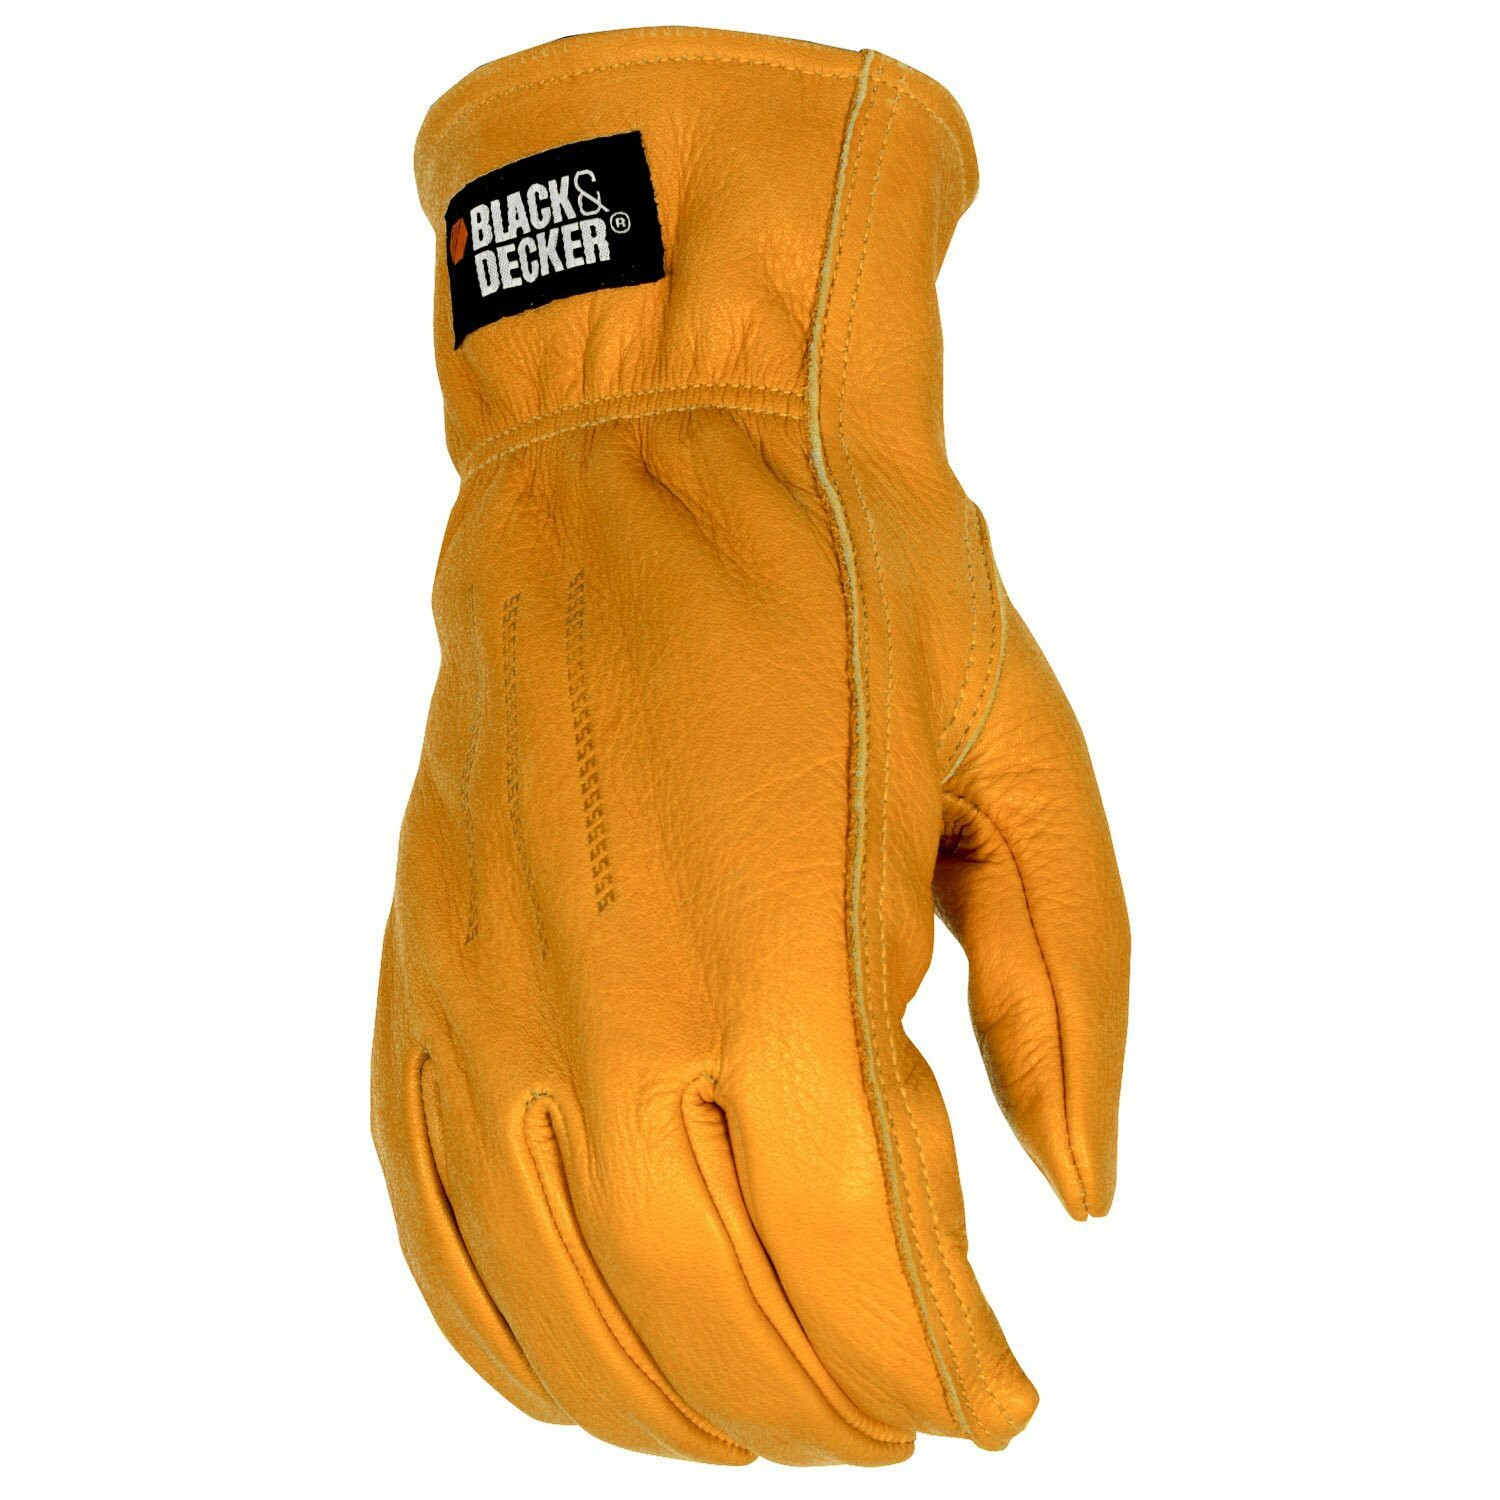 Goat leather work gloves - Black Decker Leather Drivers Work Glove Drivers Gloves Gloves Online